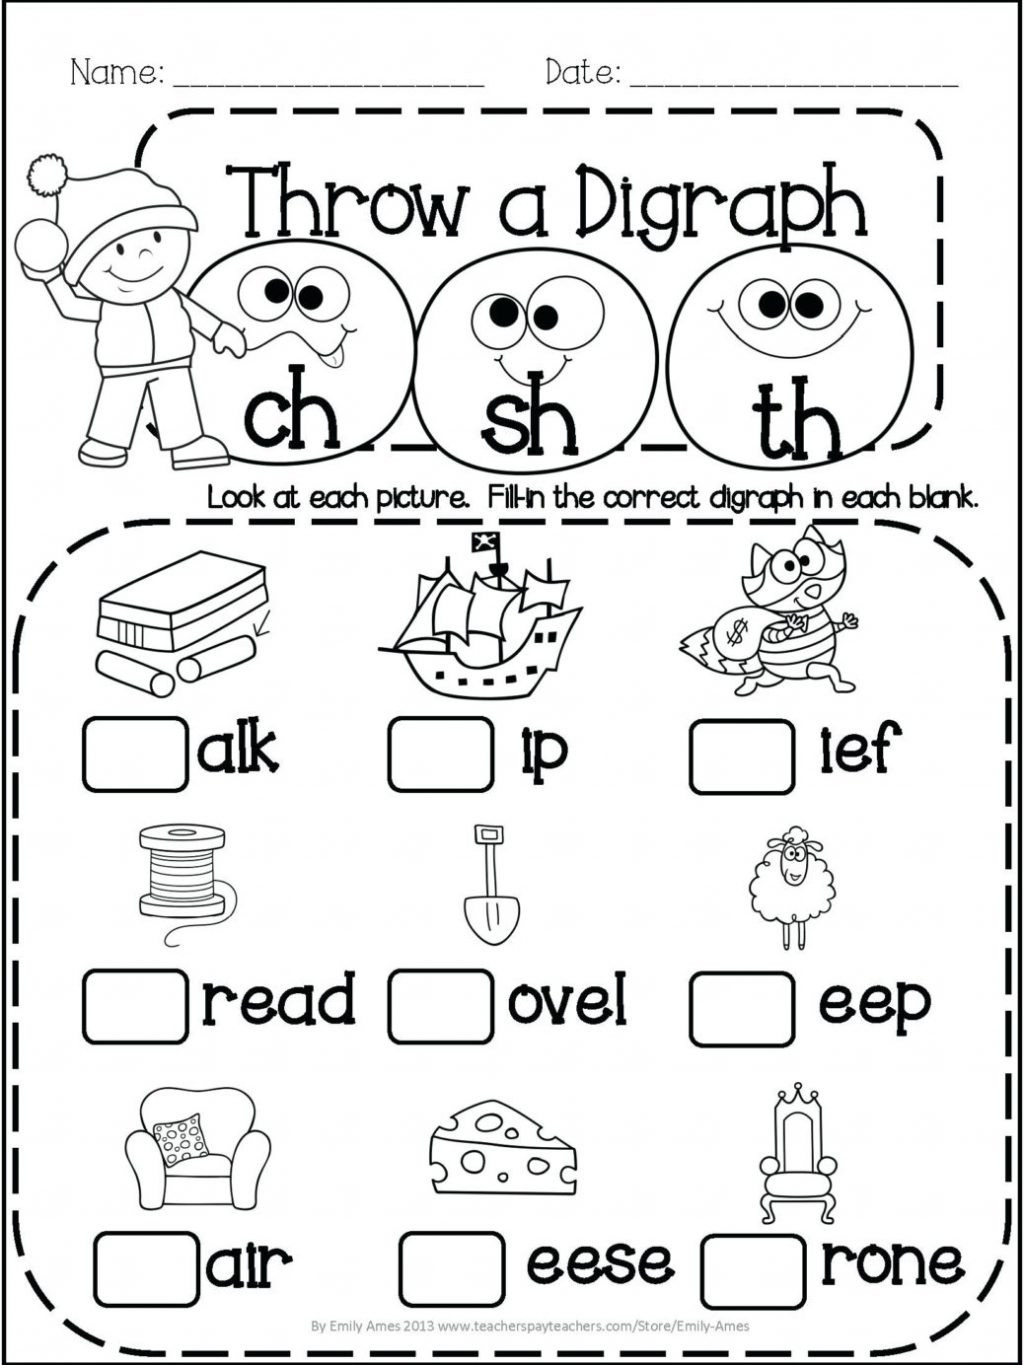 Blends Worksheets for 1st Grade Worksheet Awesome 1st Grade Phonicsksheets Image Ideas